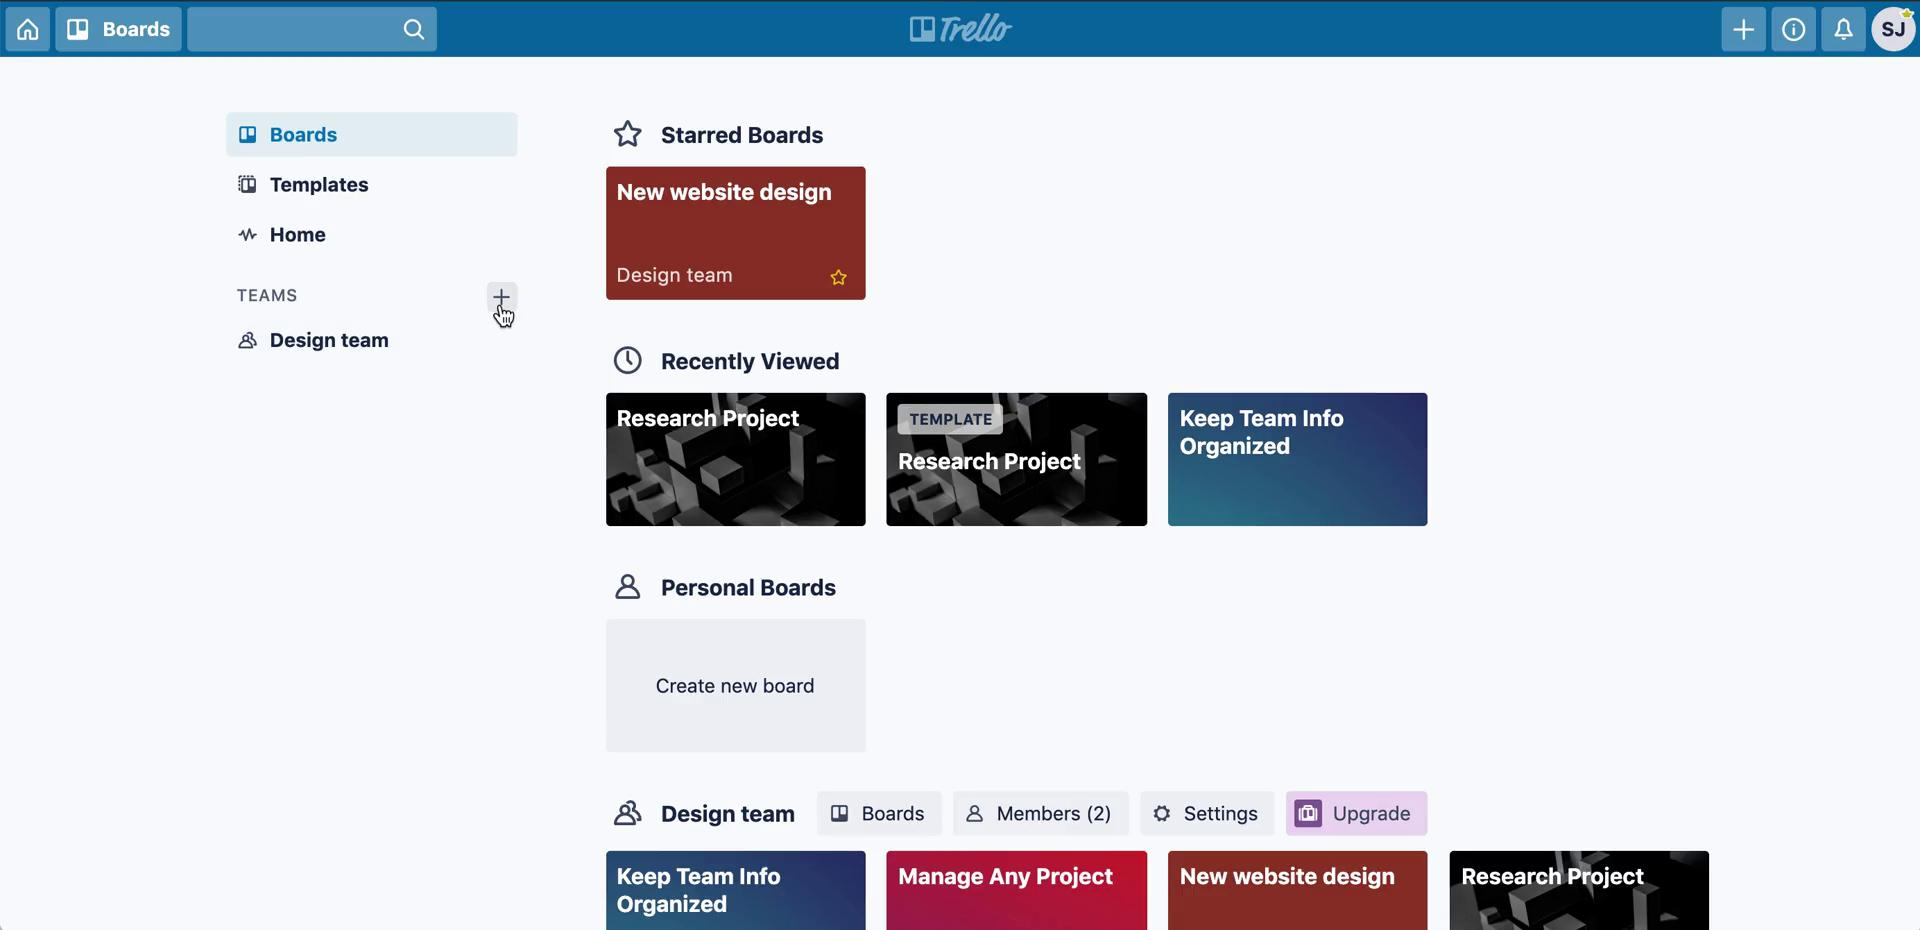 General browsing on Trello video screenshot